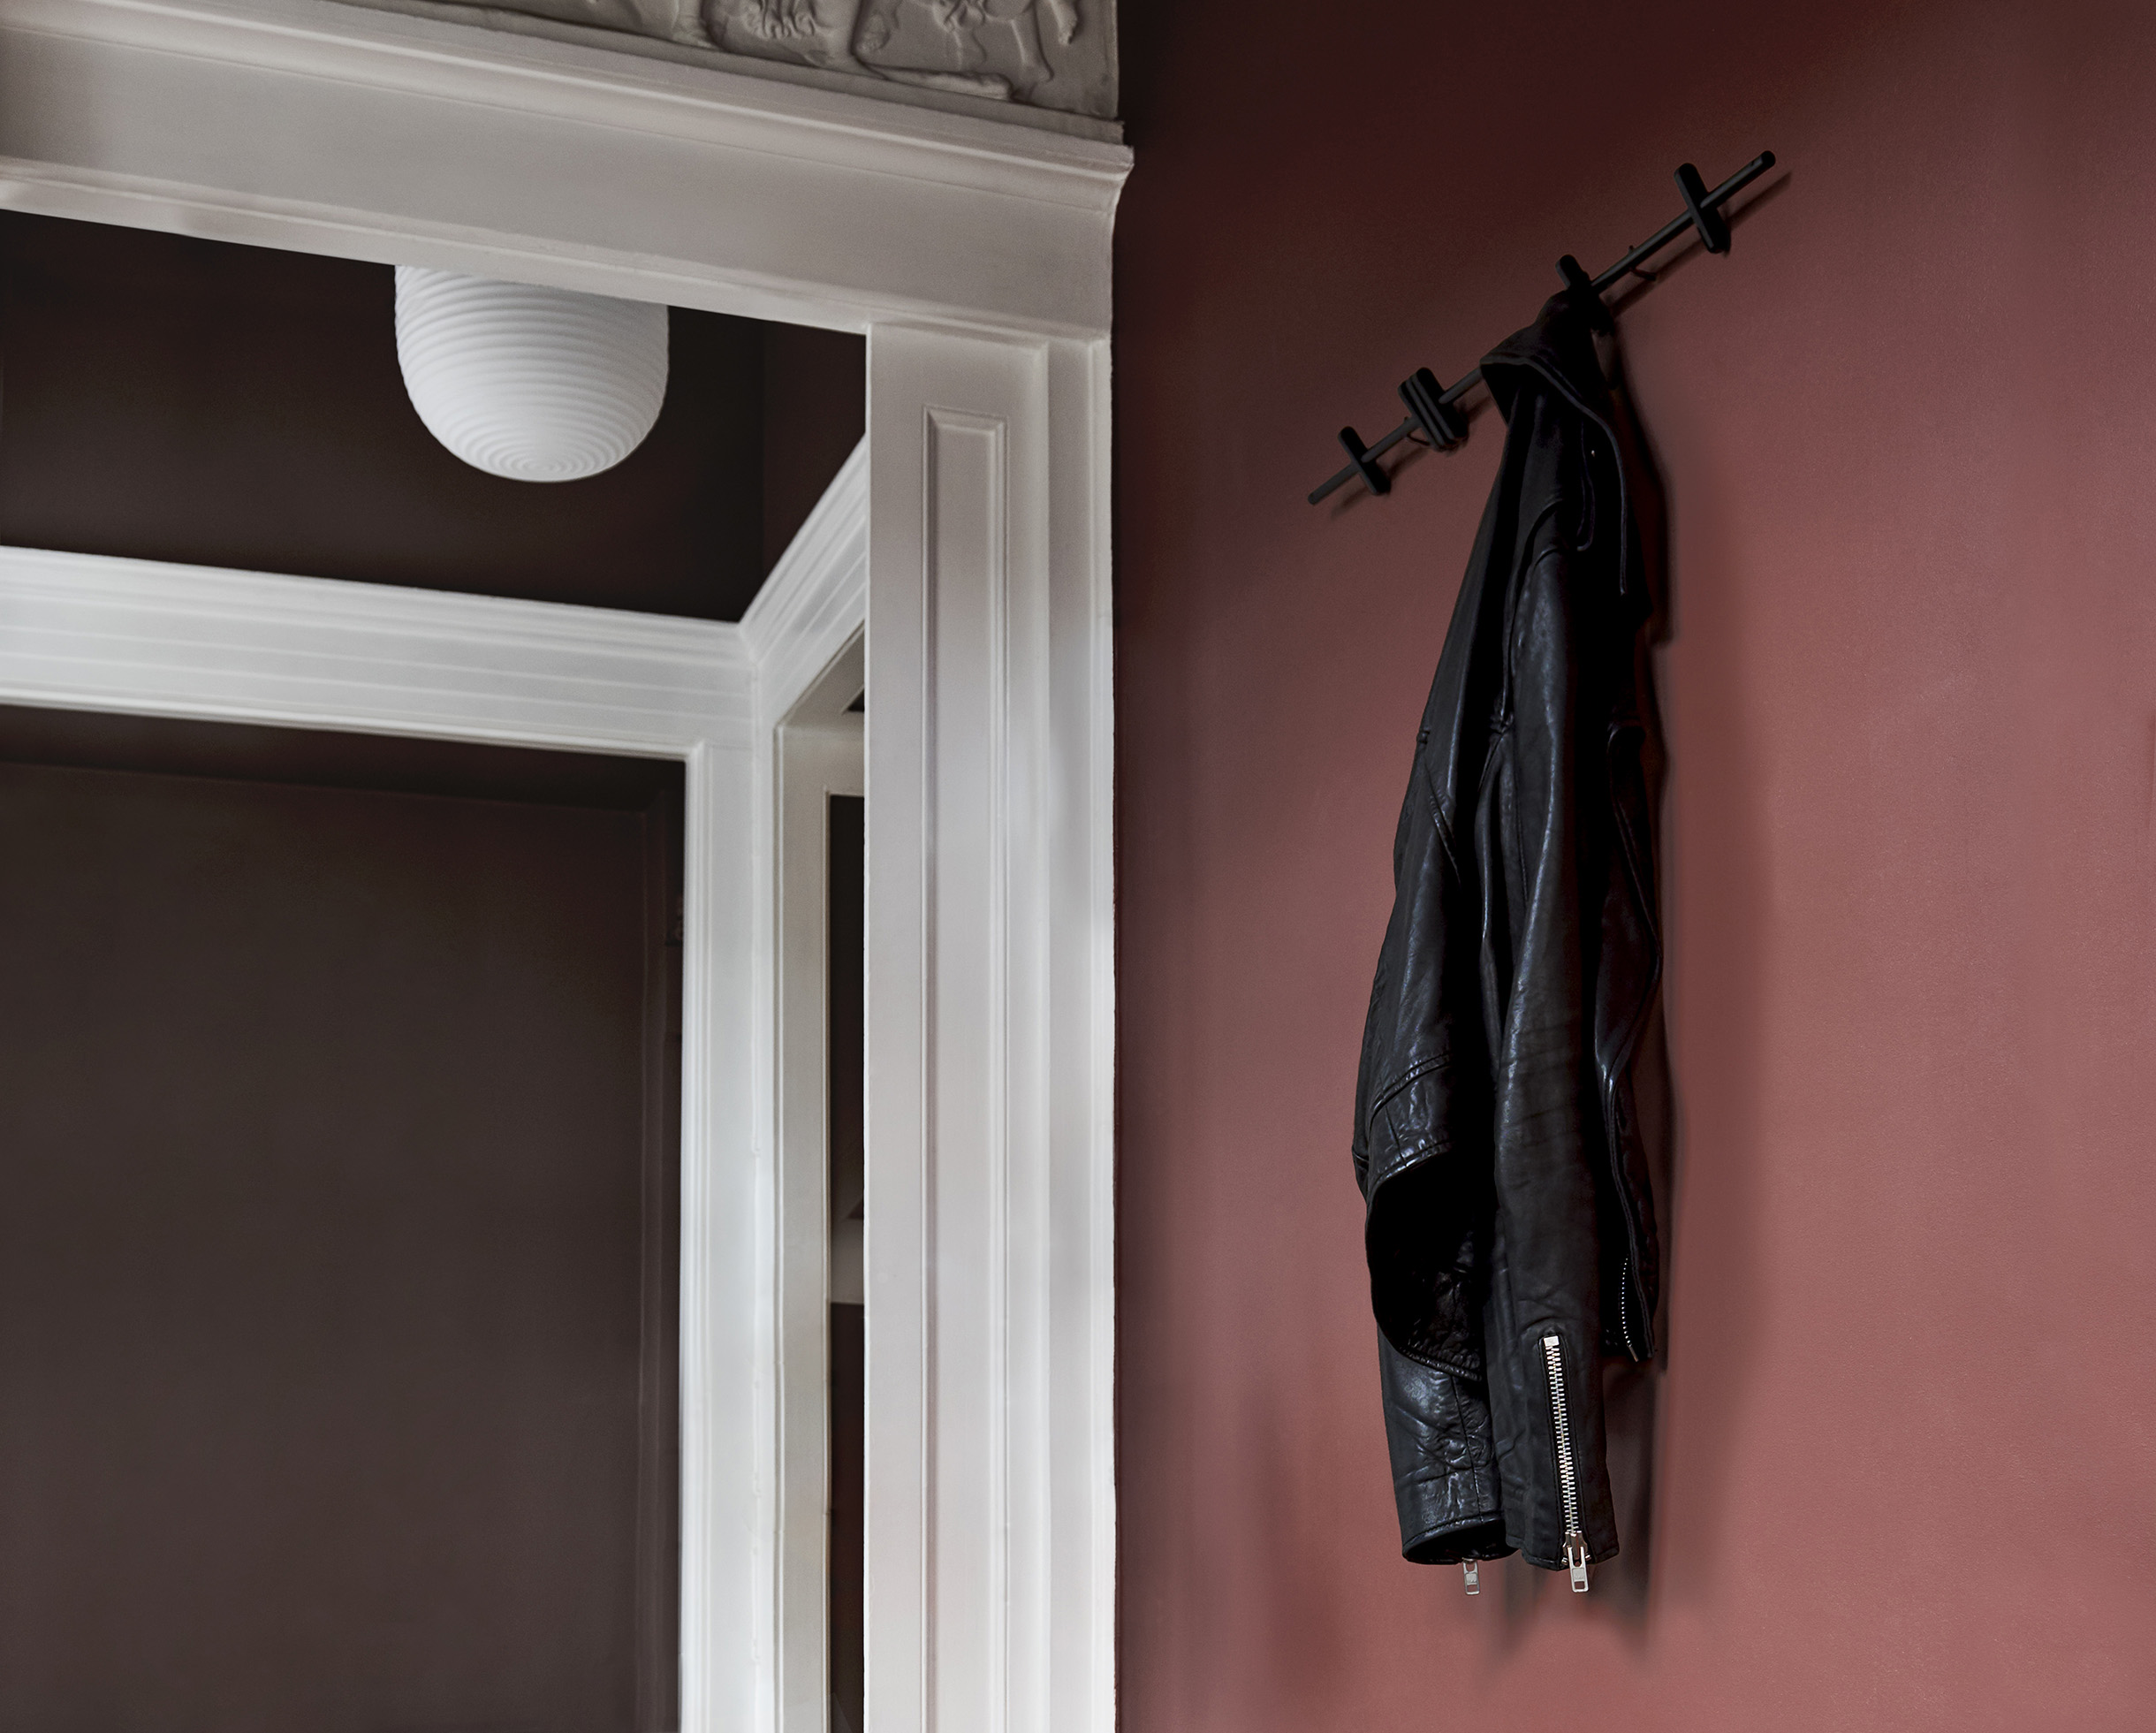 MOEBE_COAT-RACK_IN-CONTEXT_LOW-RES_4.jpg